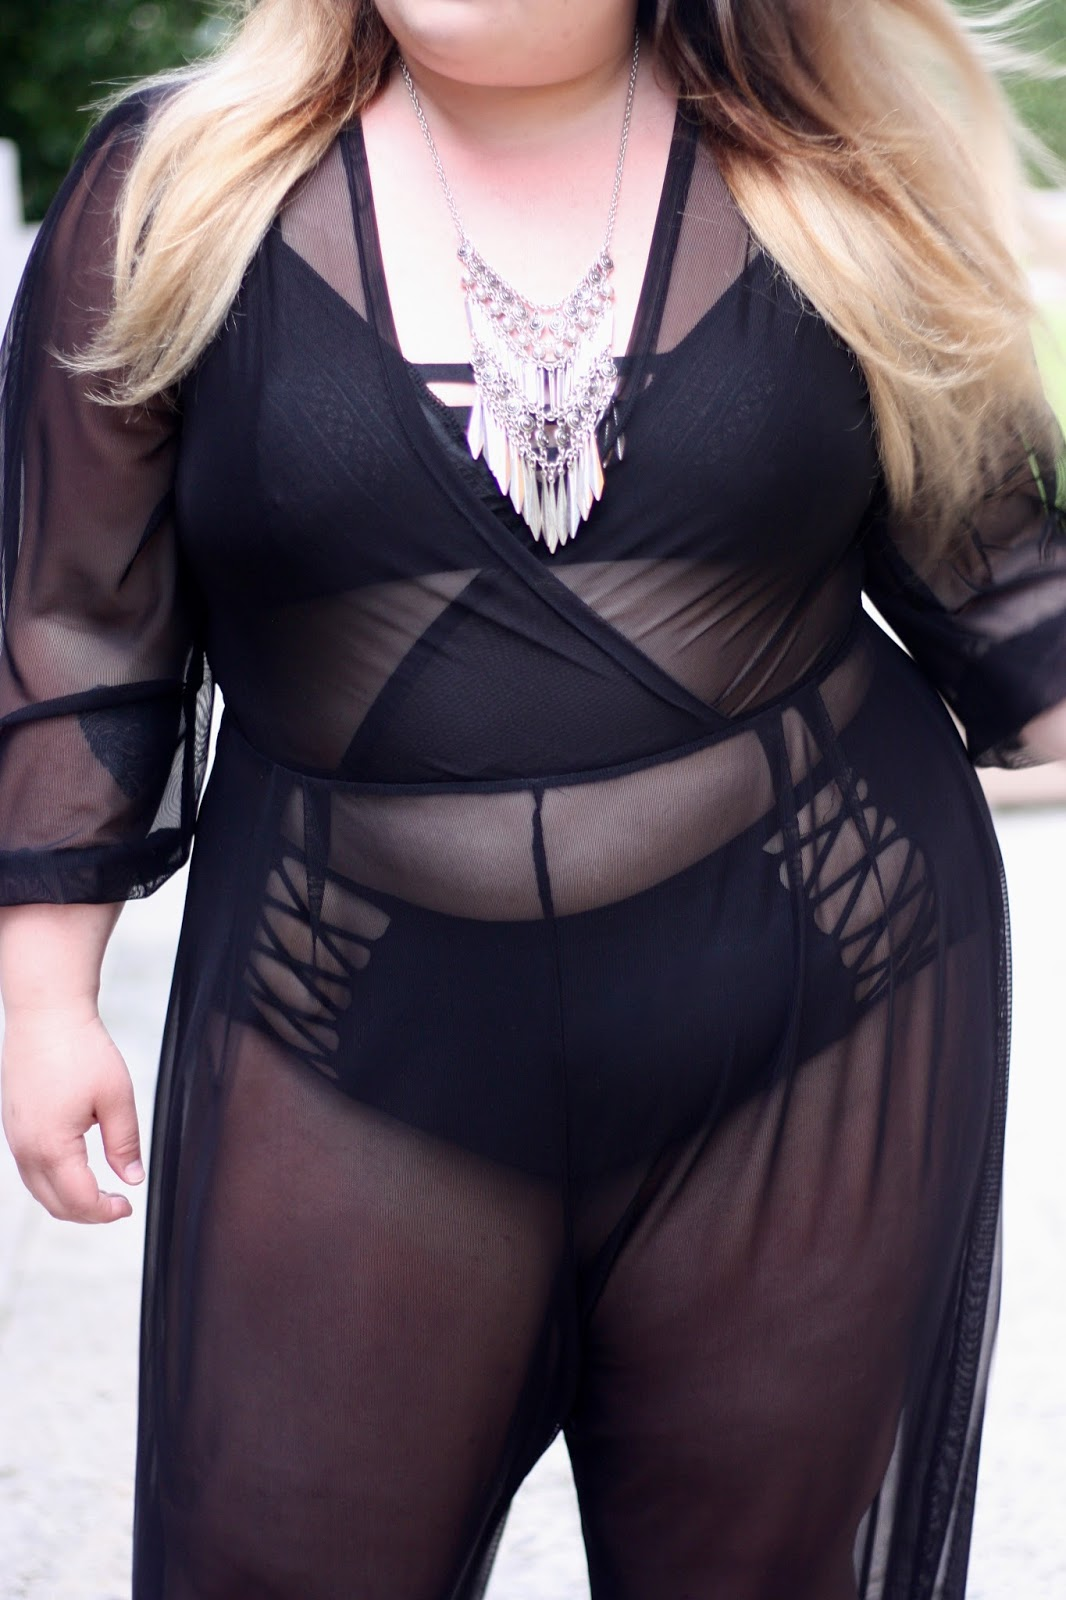 rue 107, rue107, natalie craig, natalie in the city, minnie jumpsuit, see through jumpsuit, mesh jumpsuit, plus size fashion, plus size fashion for women, miami, royal palm south beach, fatshion, curves and confidence, plus size swim cover ups, things to do in miami, collins ave, plus size, plus size swimwear